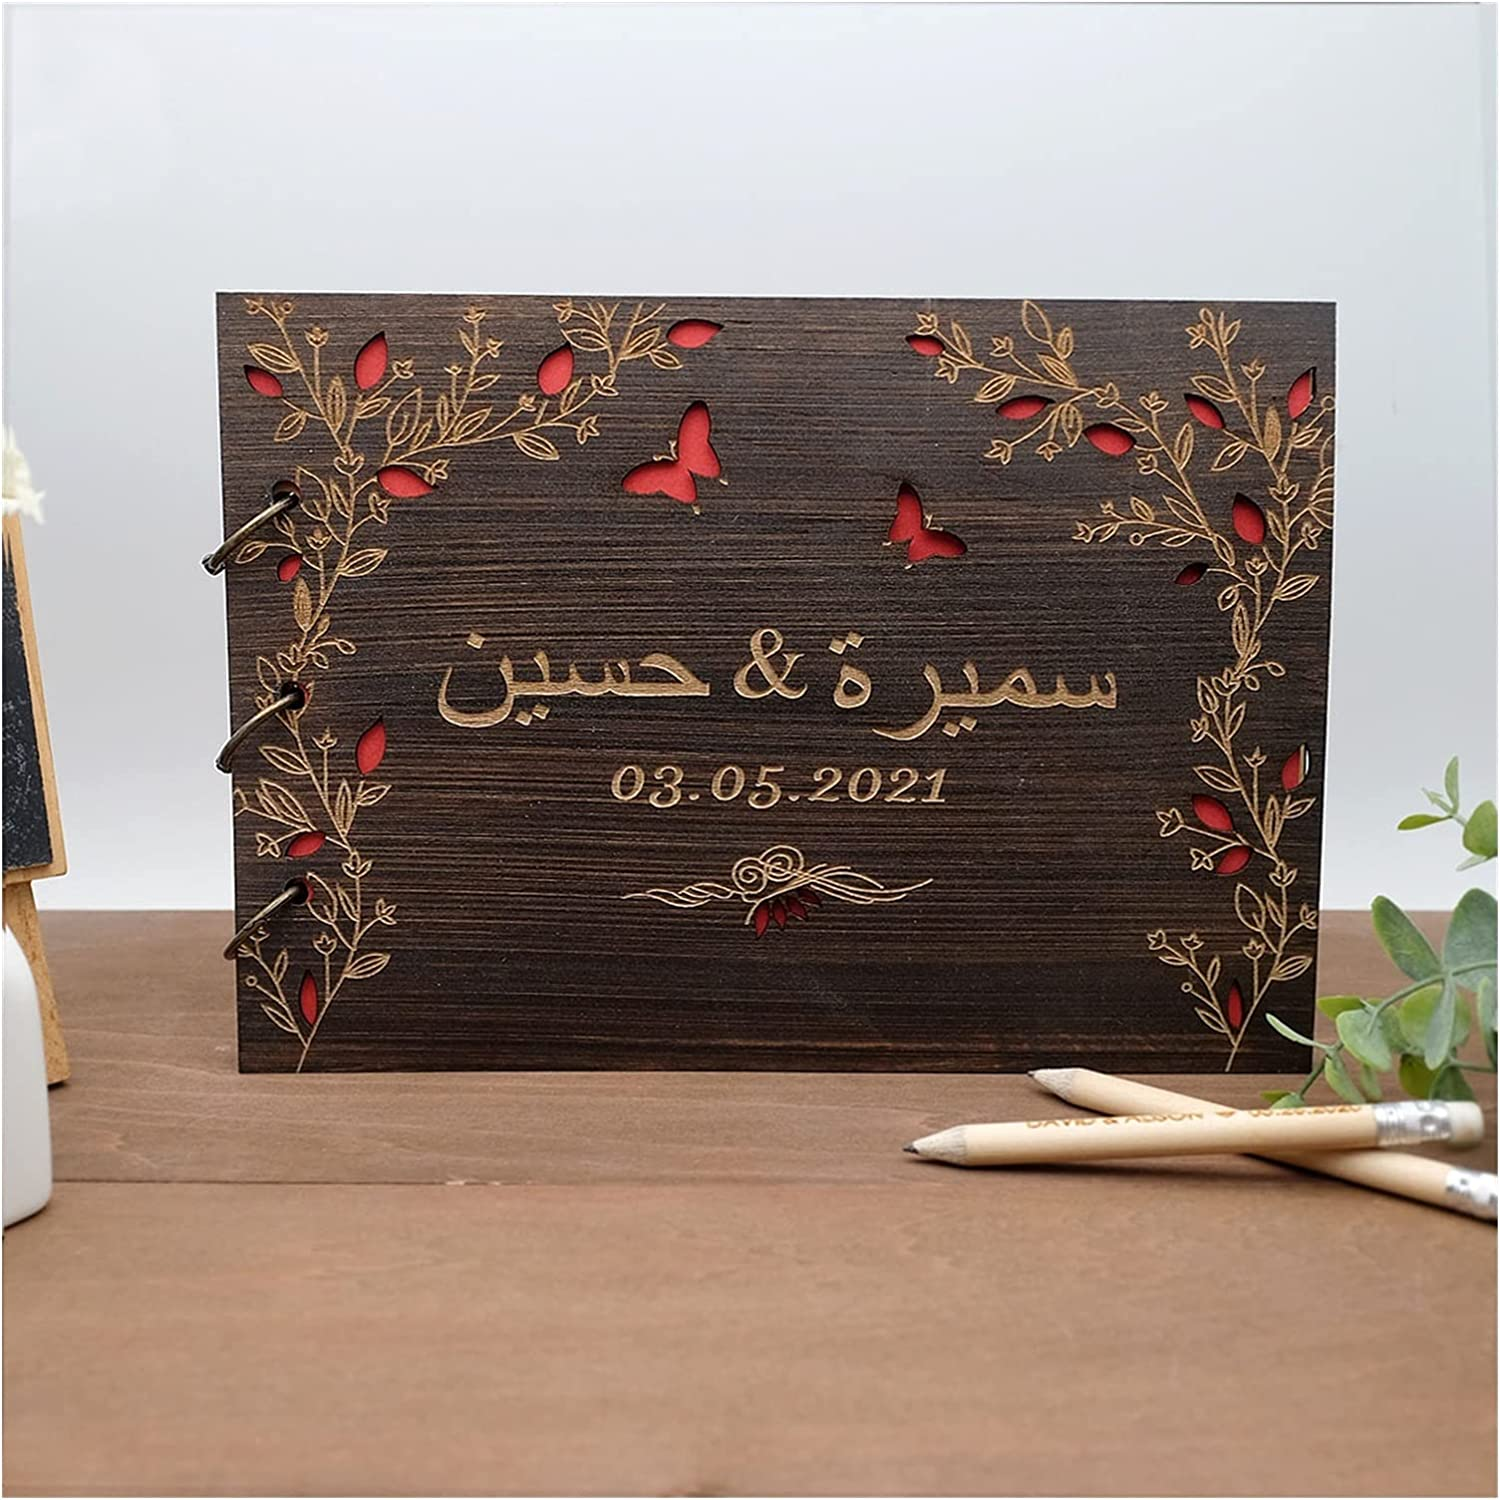 Sales of SALE items from new works HUMINGG Wedding Guest Book High order Personalized Guestbook Weddin